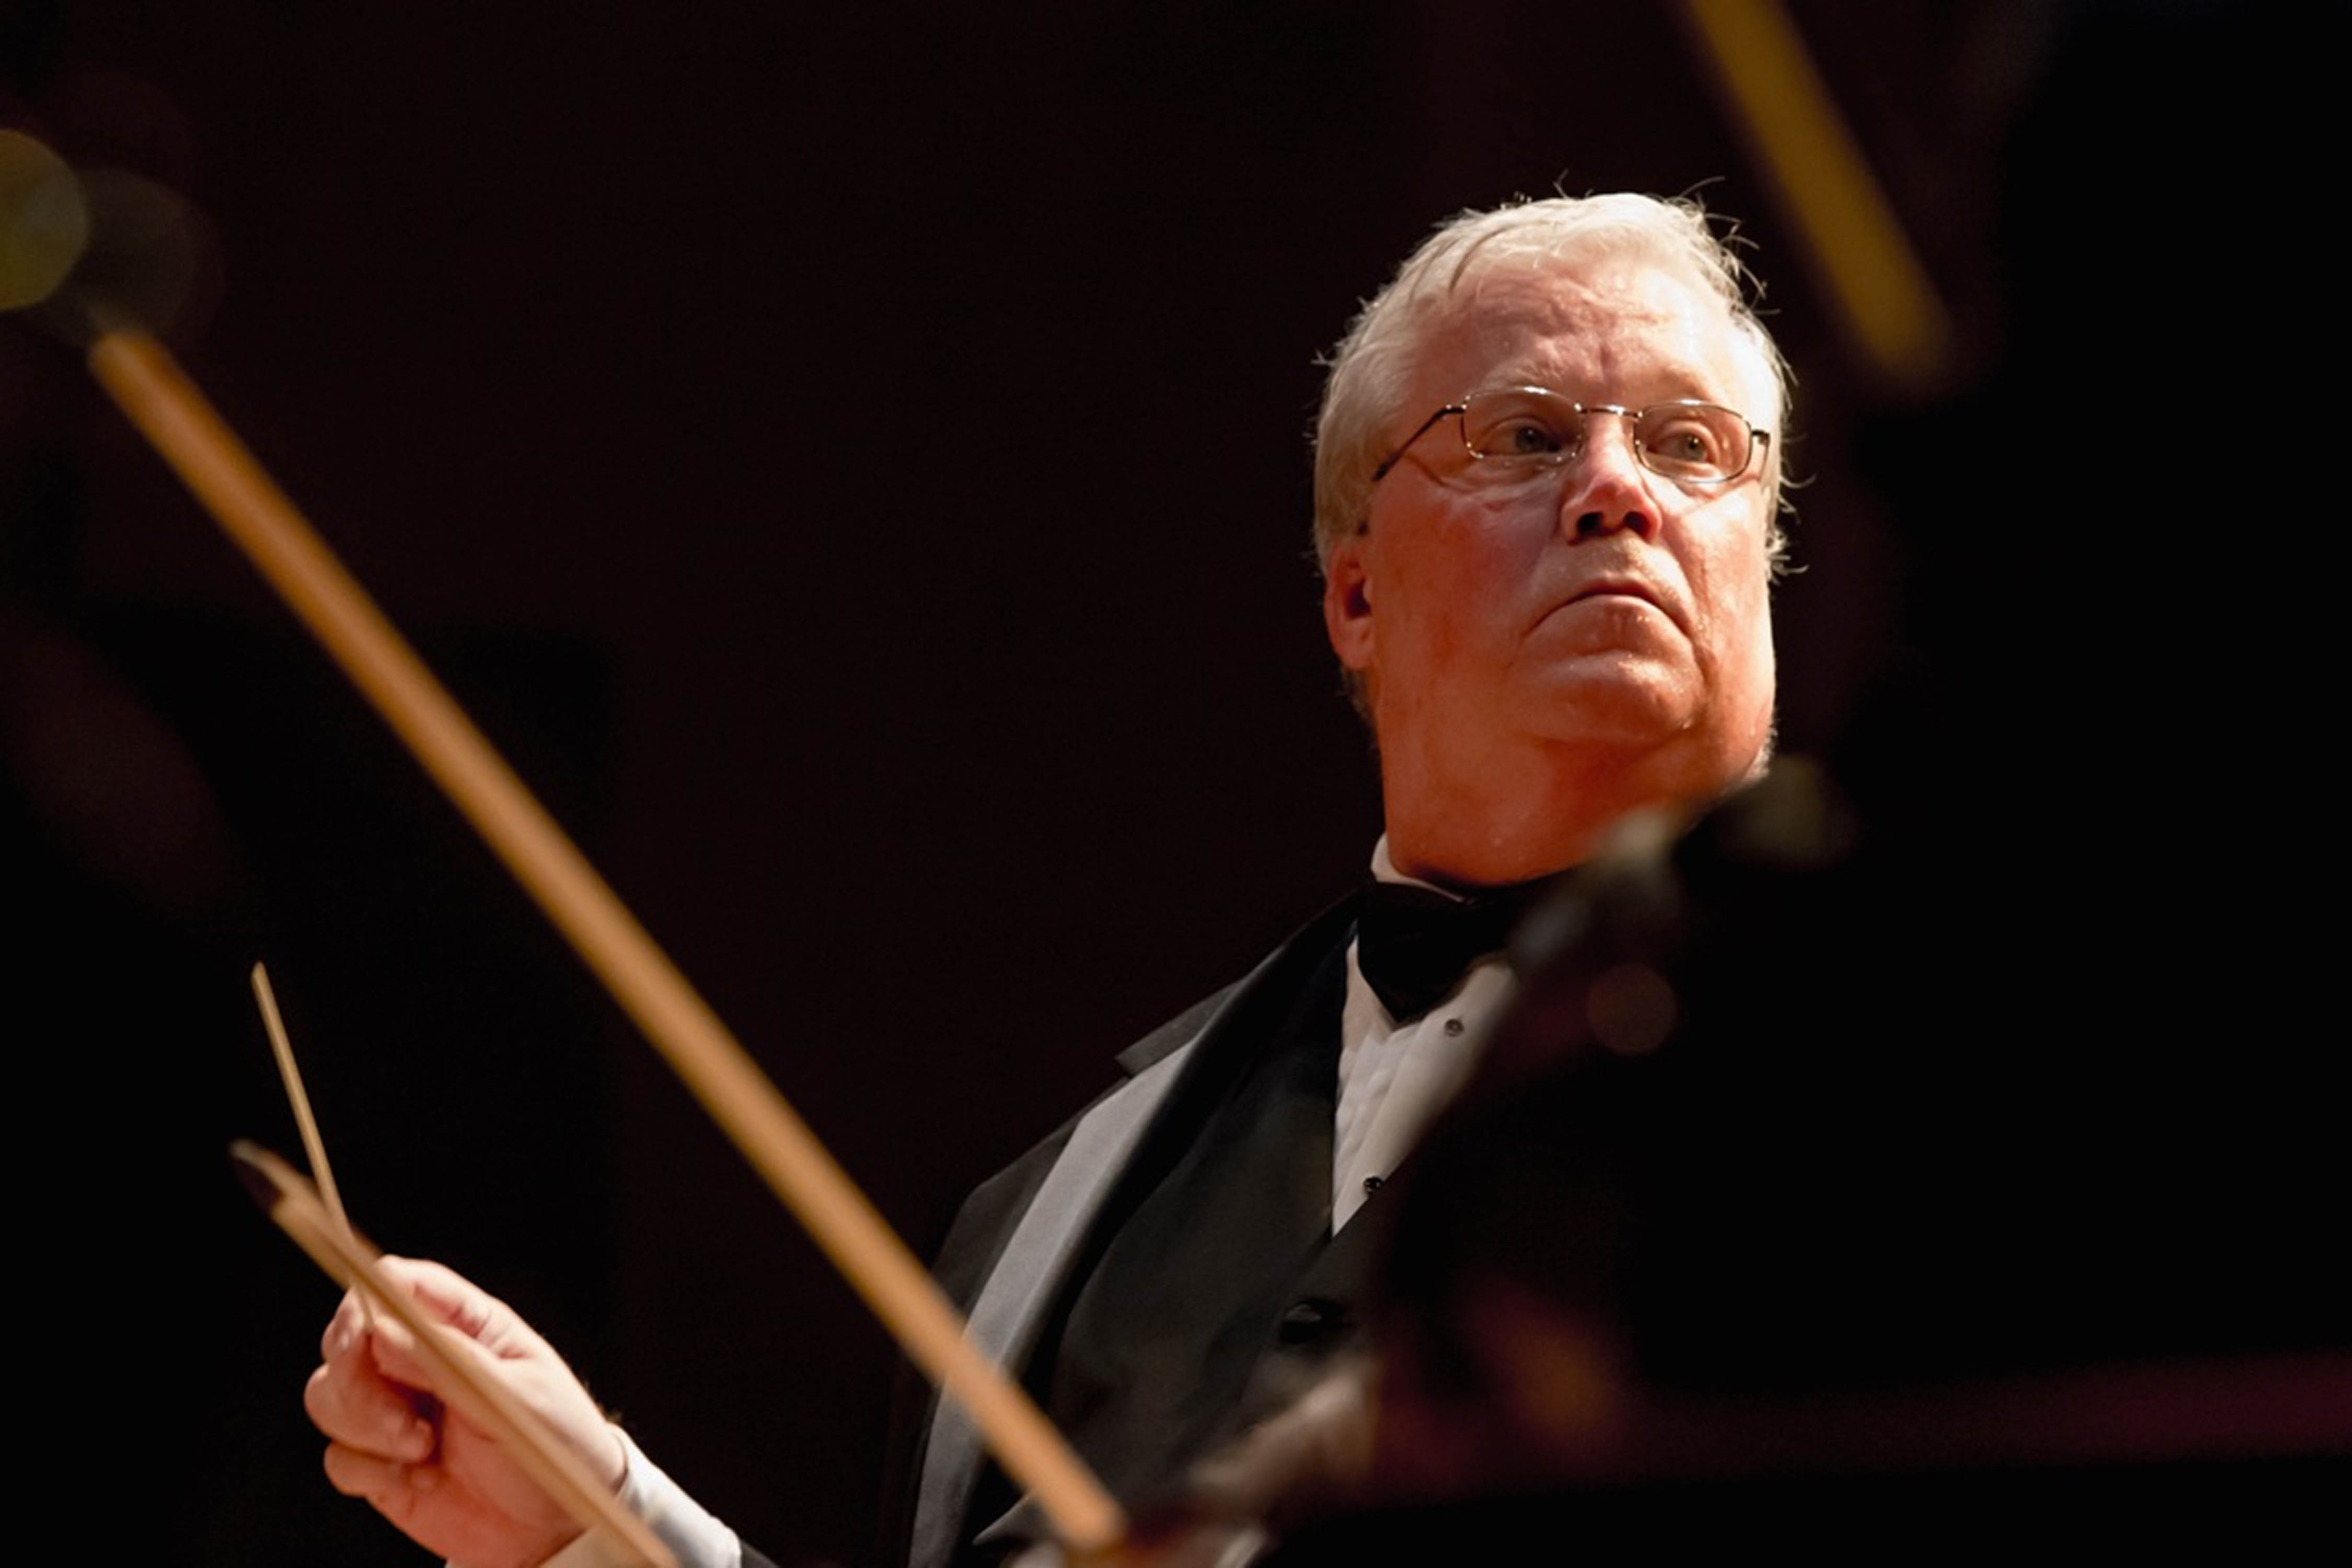 Maestro Robert E. Wills we lead the Maui Chamber Orchestra in a varied program from Bach, Hadyn and Mozart to Stravinsky. Sun Dancer photo.